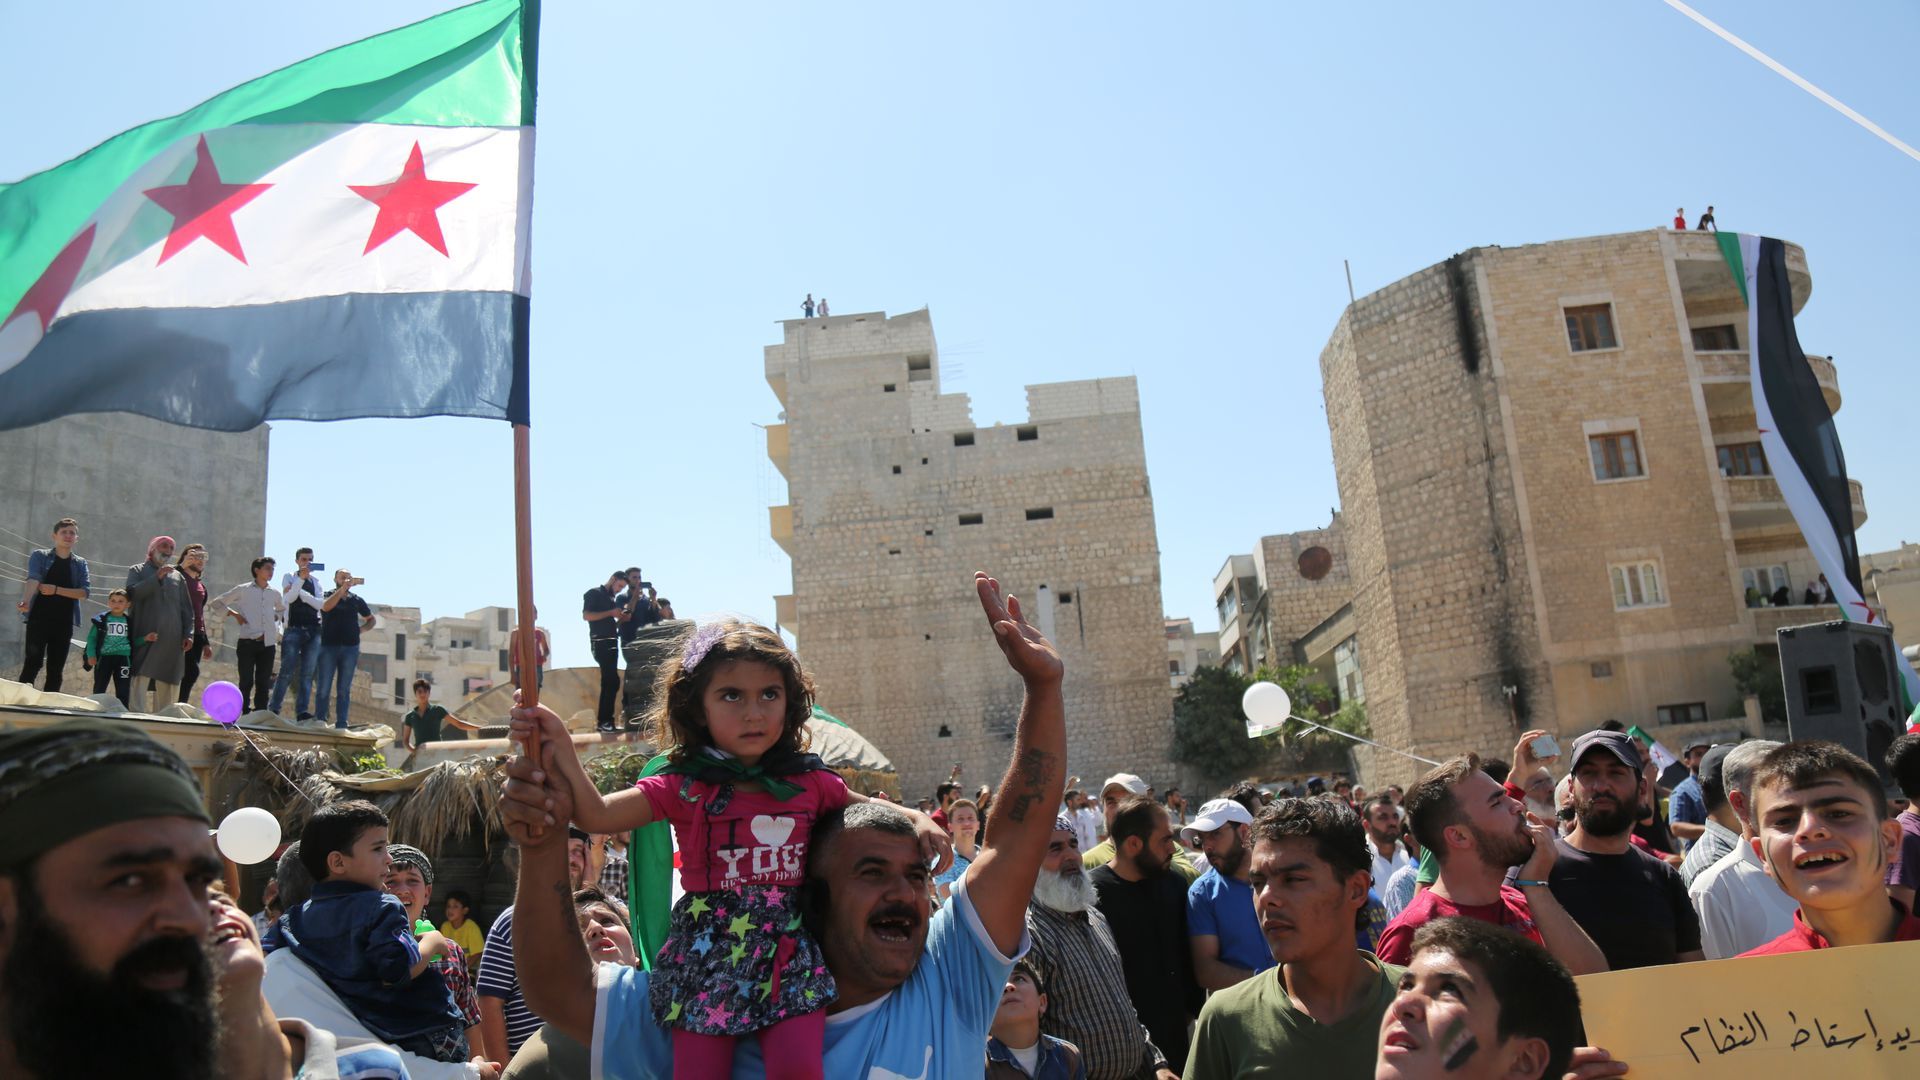 People of Idlib hold a Syrian revolution flag during a demonstration to demand the international community stop the military campaign by Syrian regime